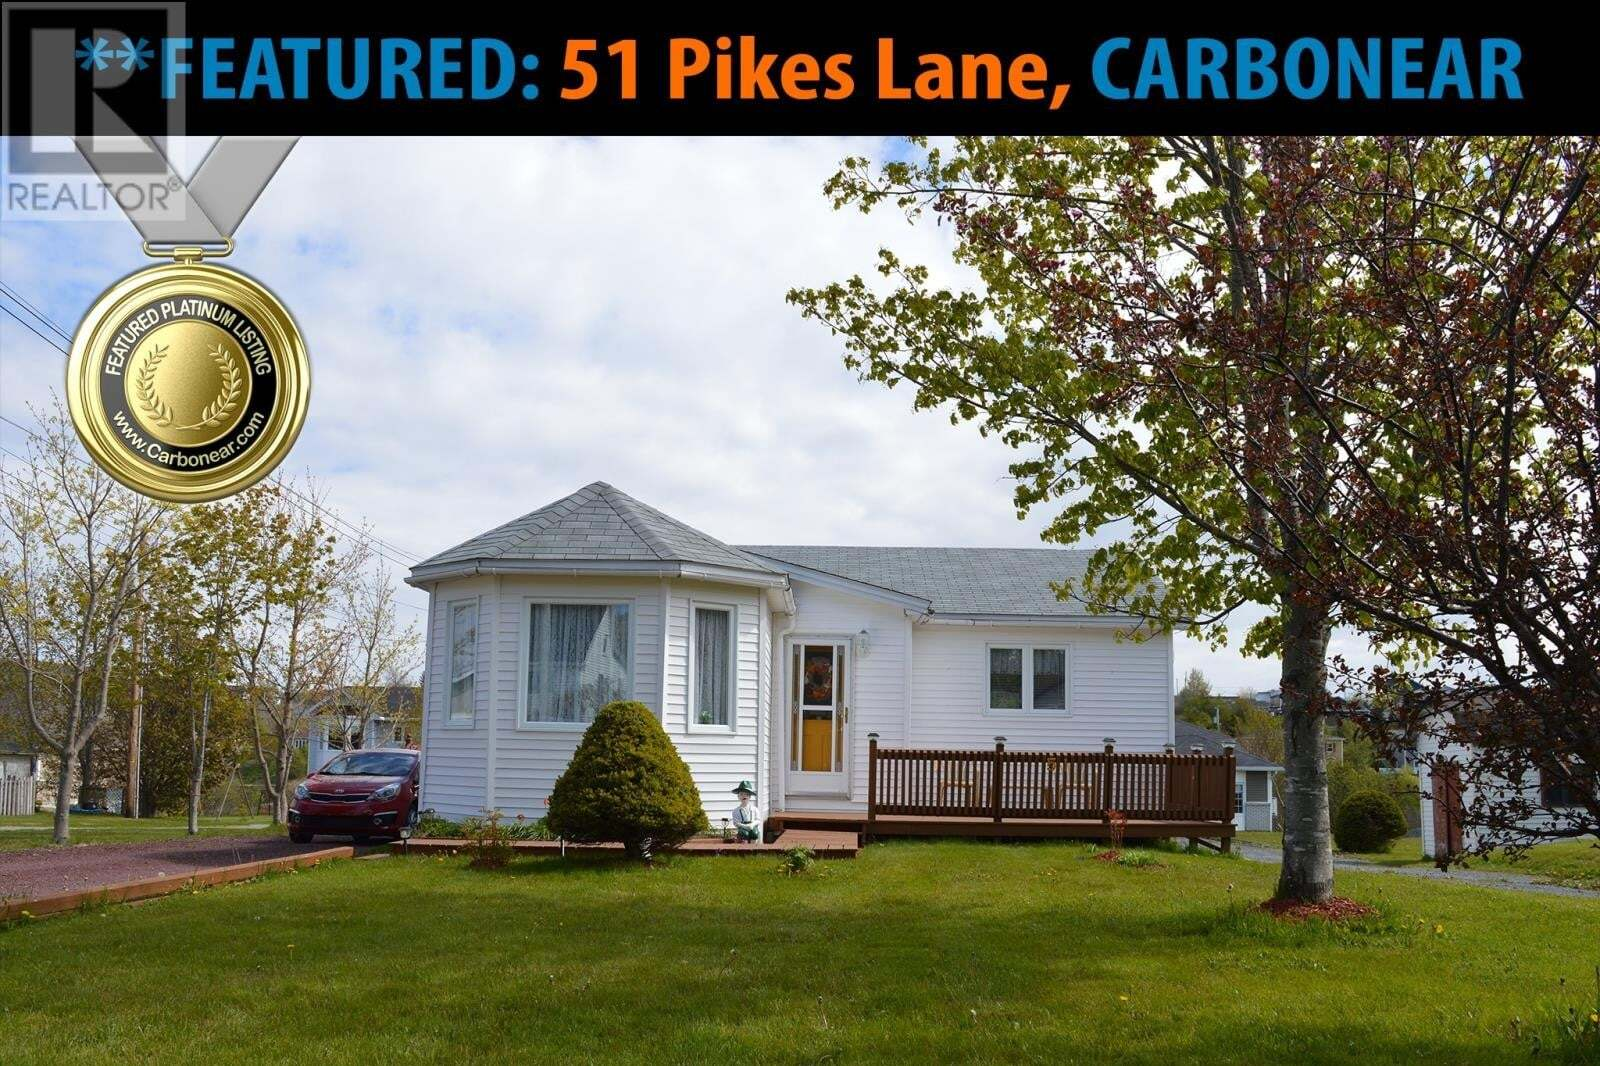 House for sale at 51 Pike's Ln Carbonear Newfoundland - MLS: 1208821